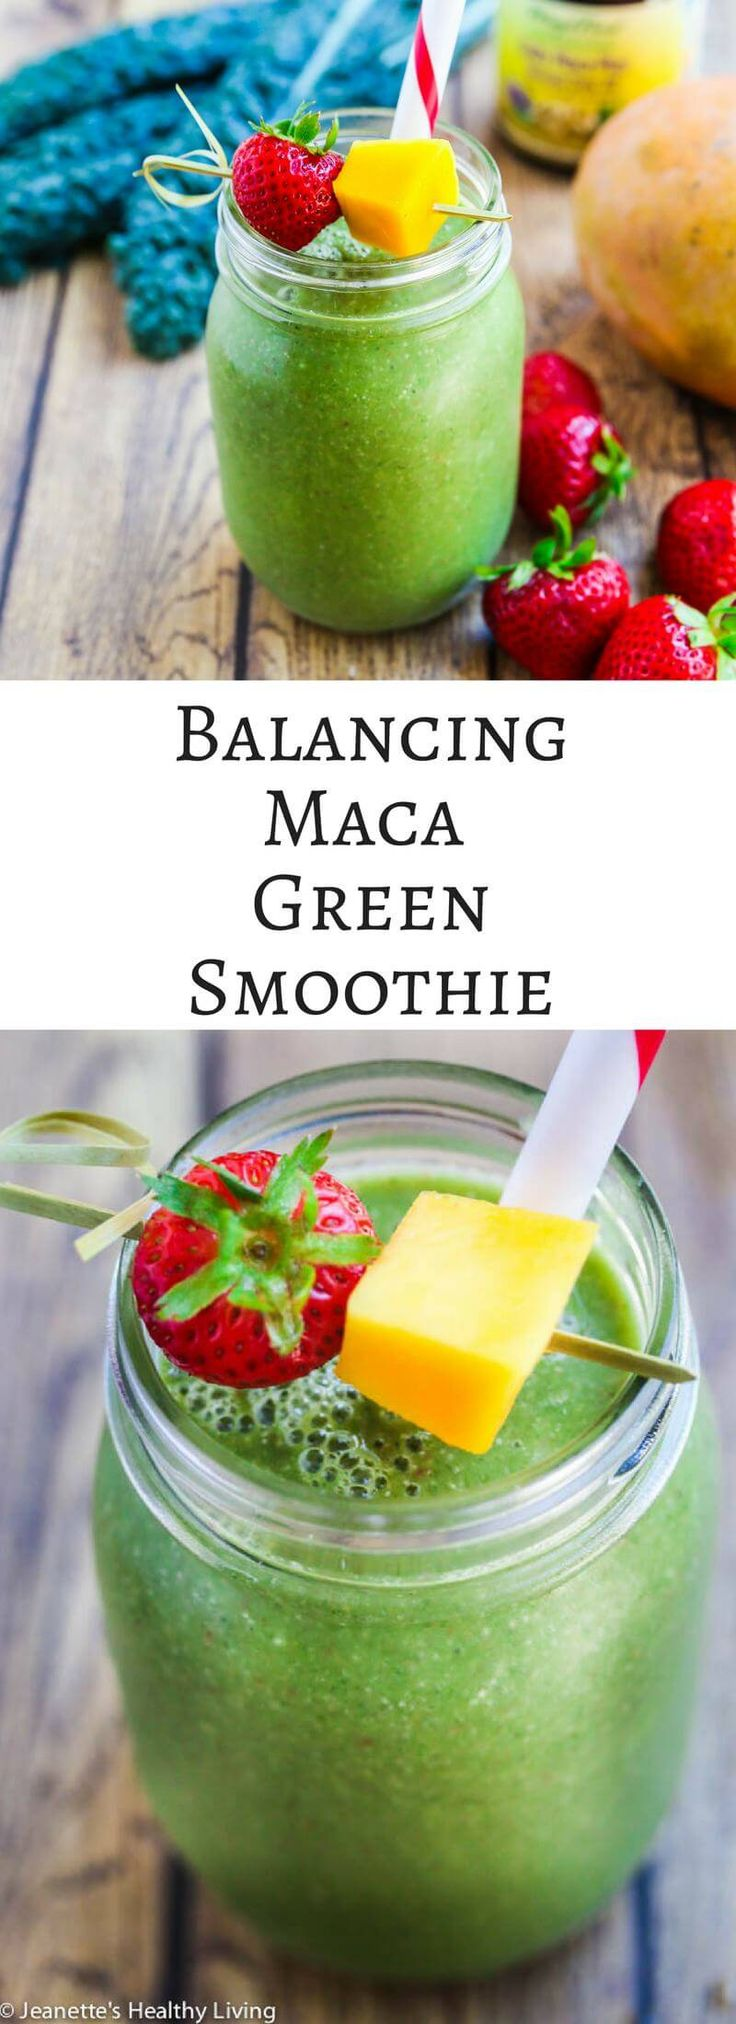 Balancing Maca Green Smoothie - this green smoothie is hormone balancing and a good source of protein and fiber for women 40+ ~ http://jeanetteshealthyliving.com @MegaFood #smoothie #recipe #ad